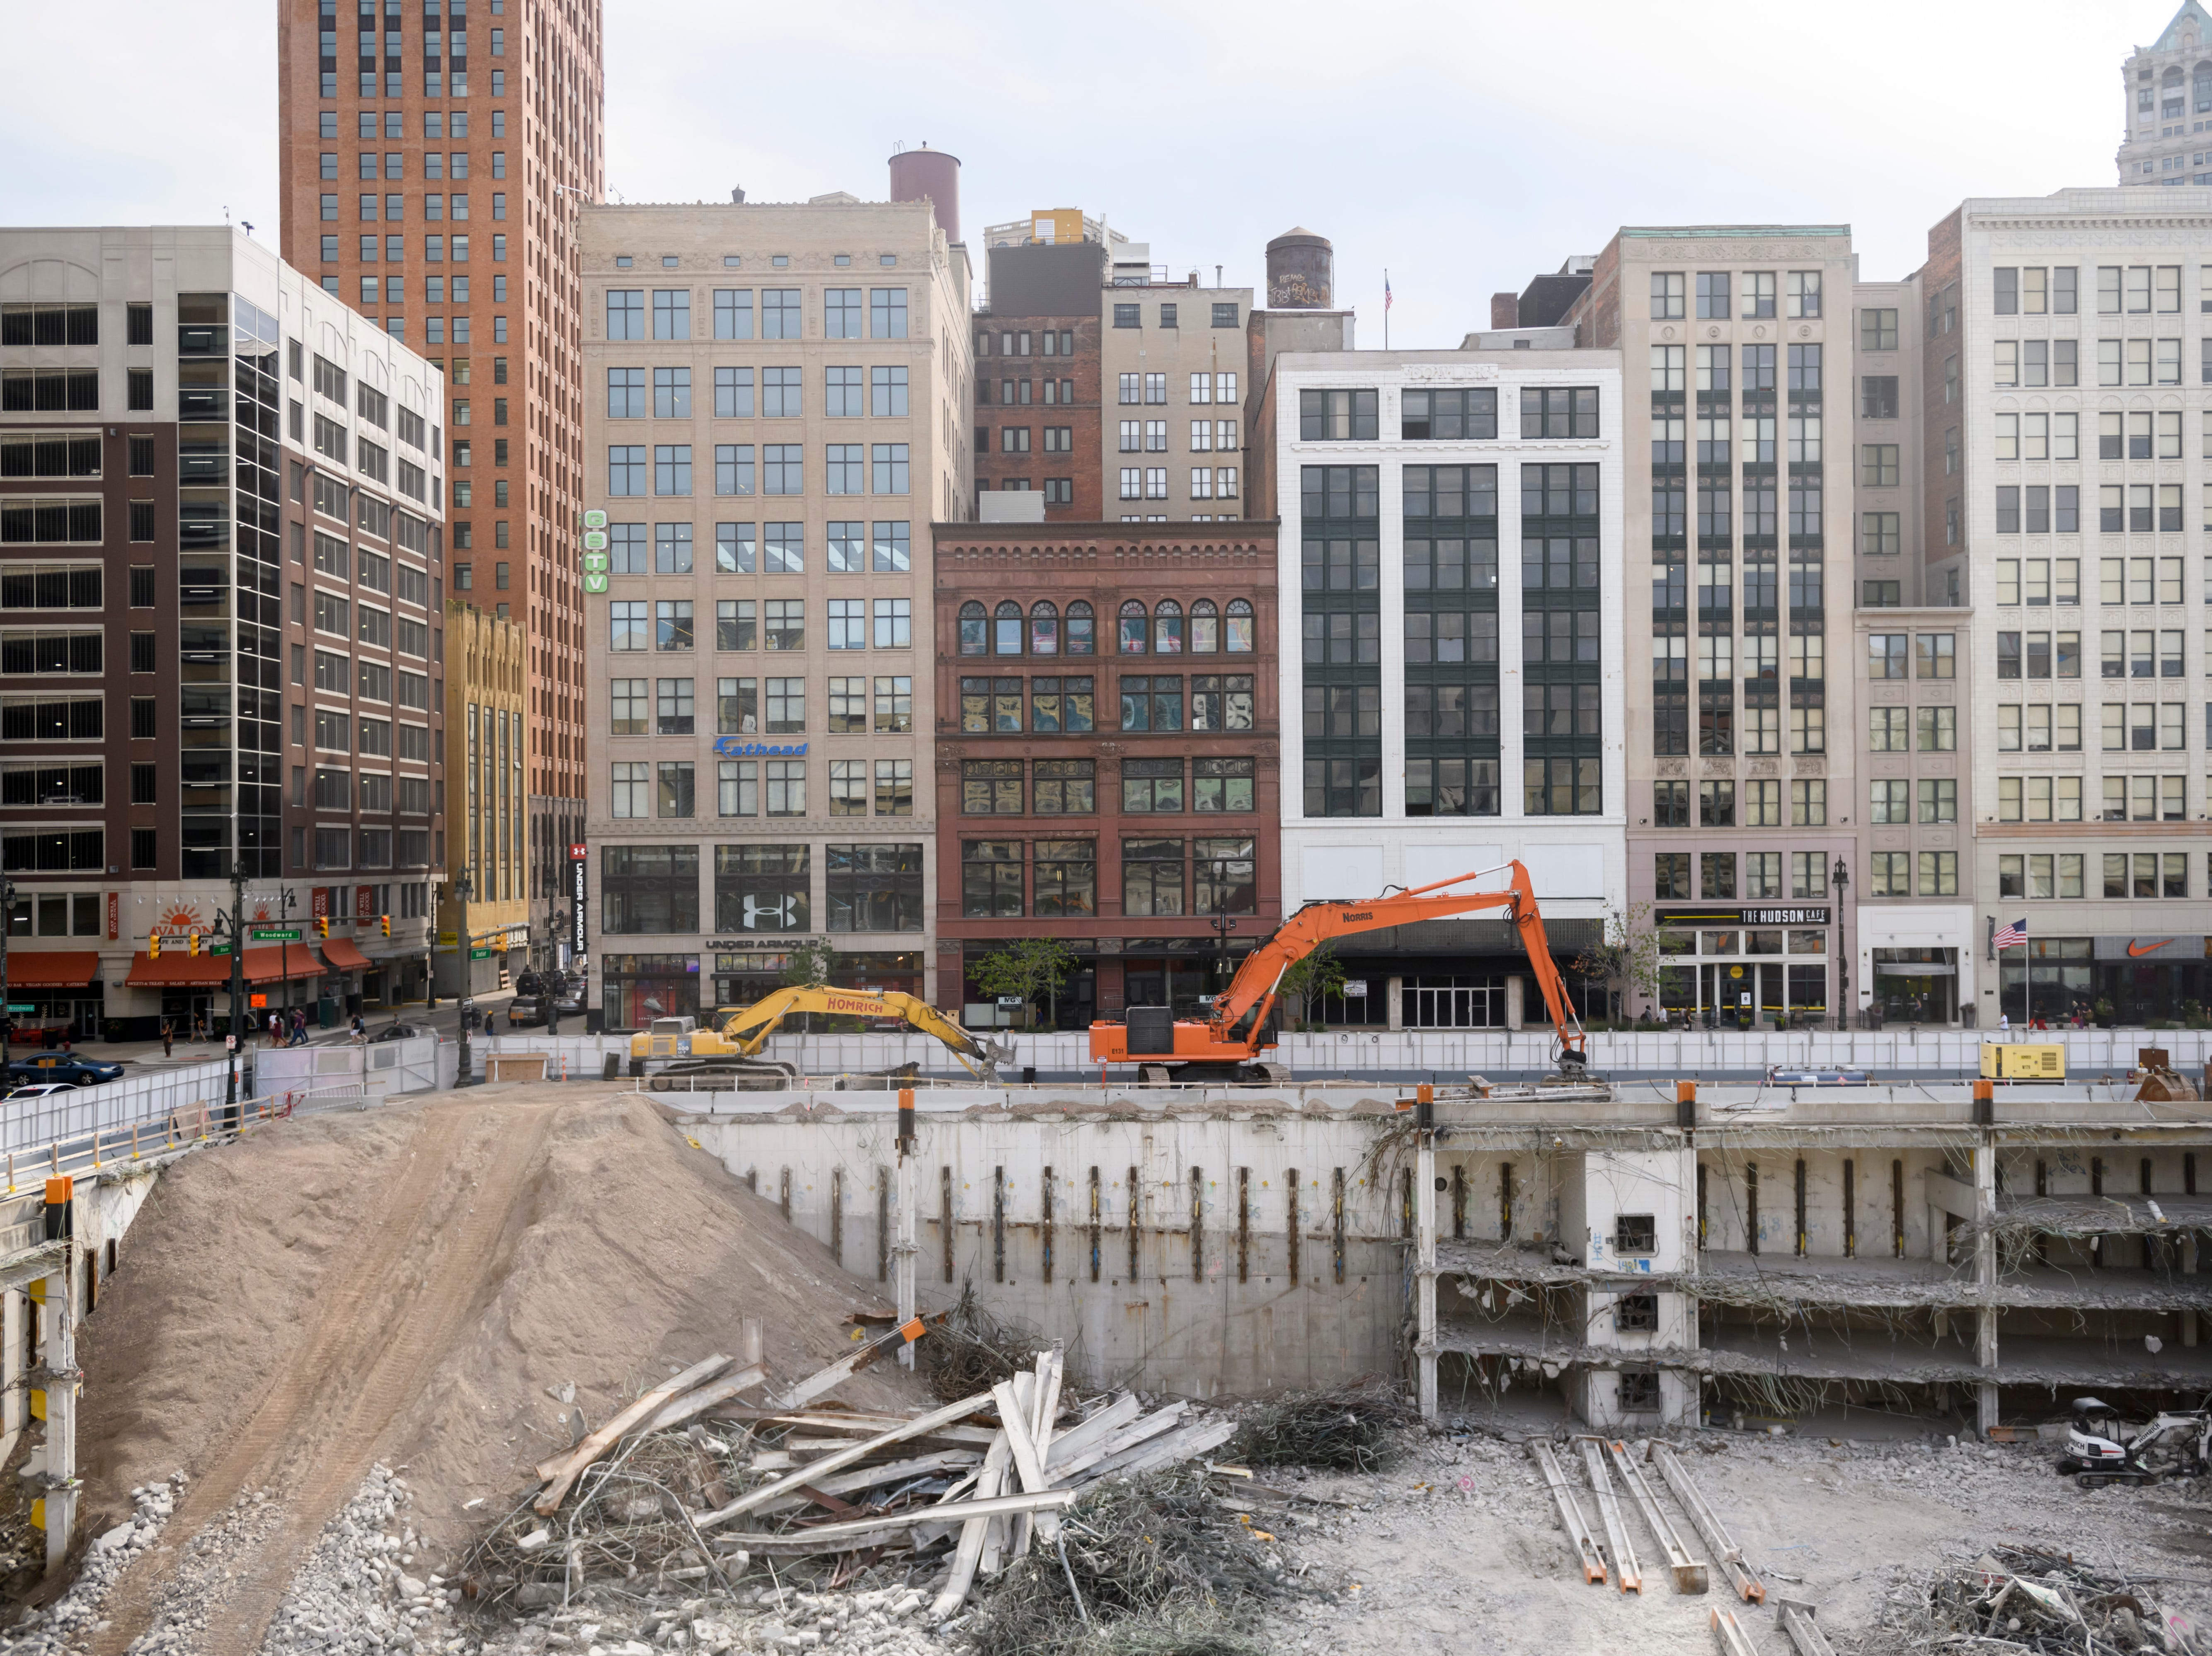 Dan Gilbert's Bedrock has participated in benefits talks for multiple projects in the city's downtown, including the Hudson's site, seen here.